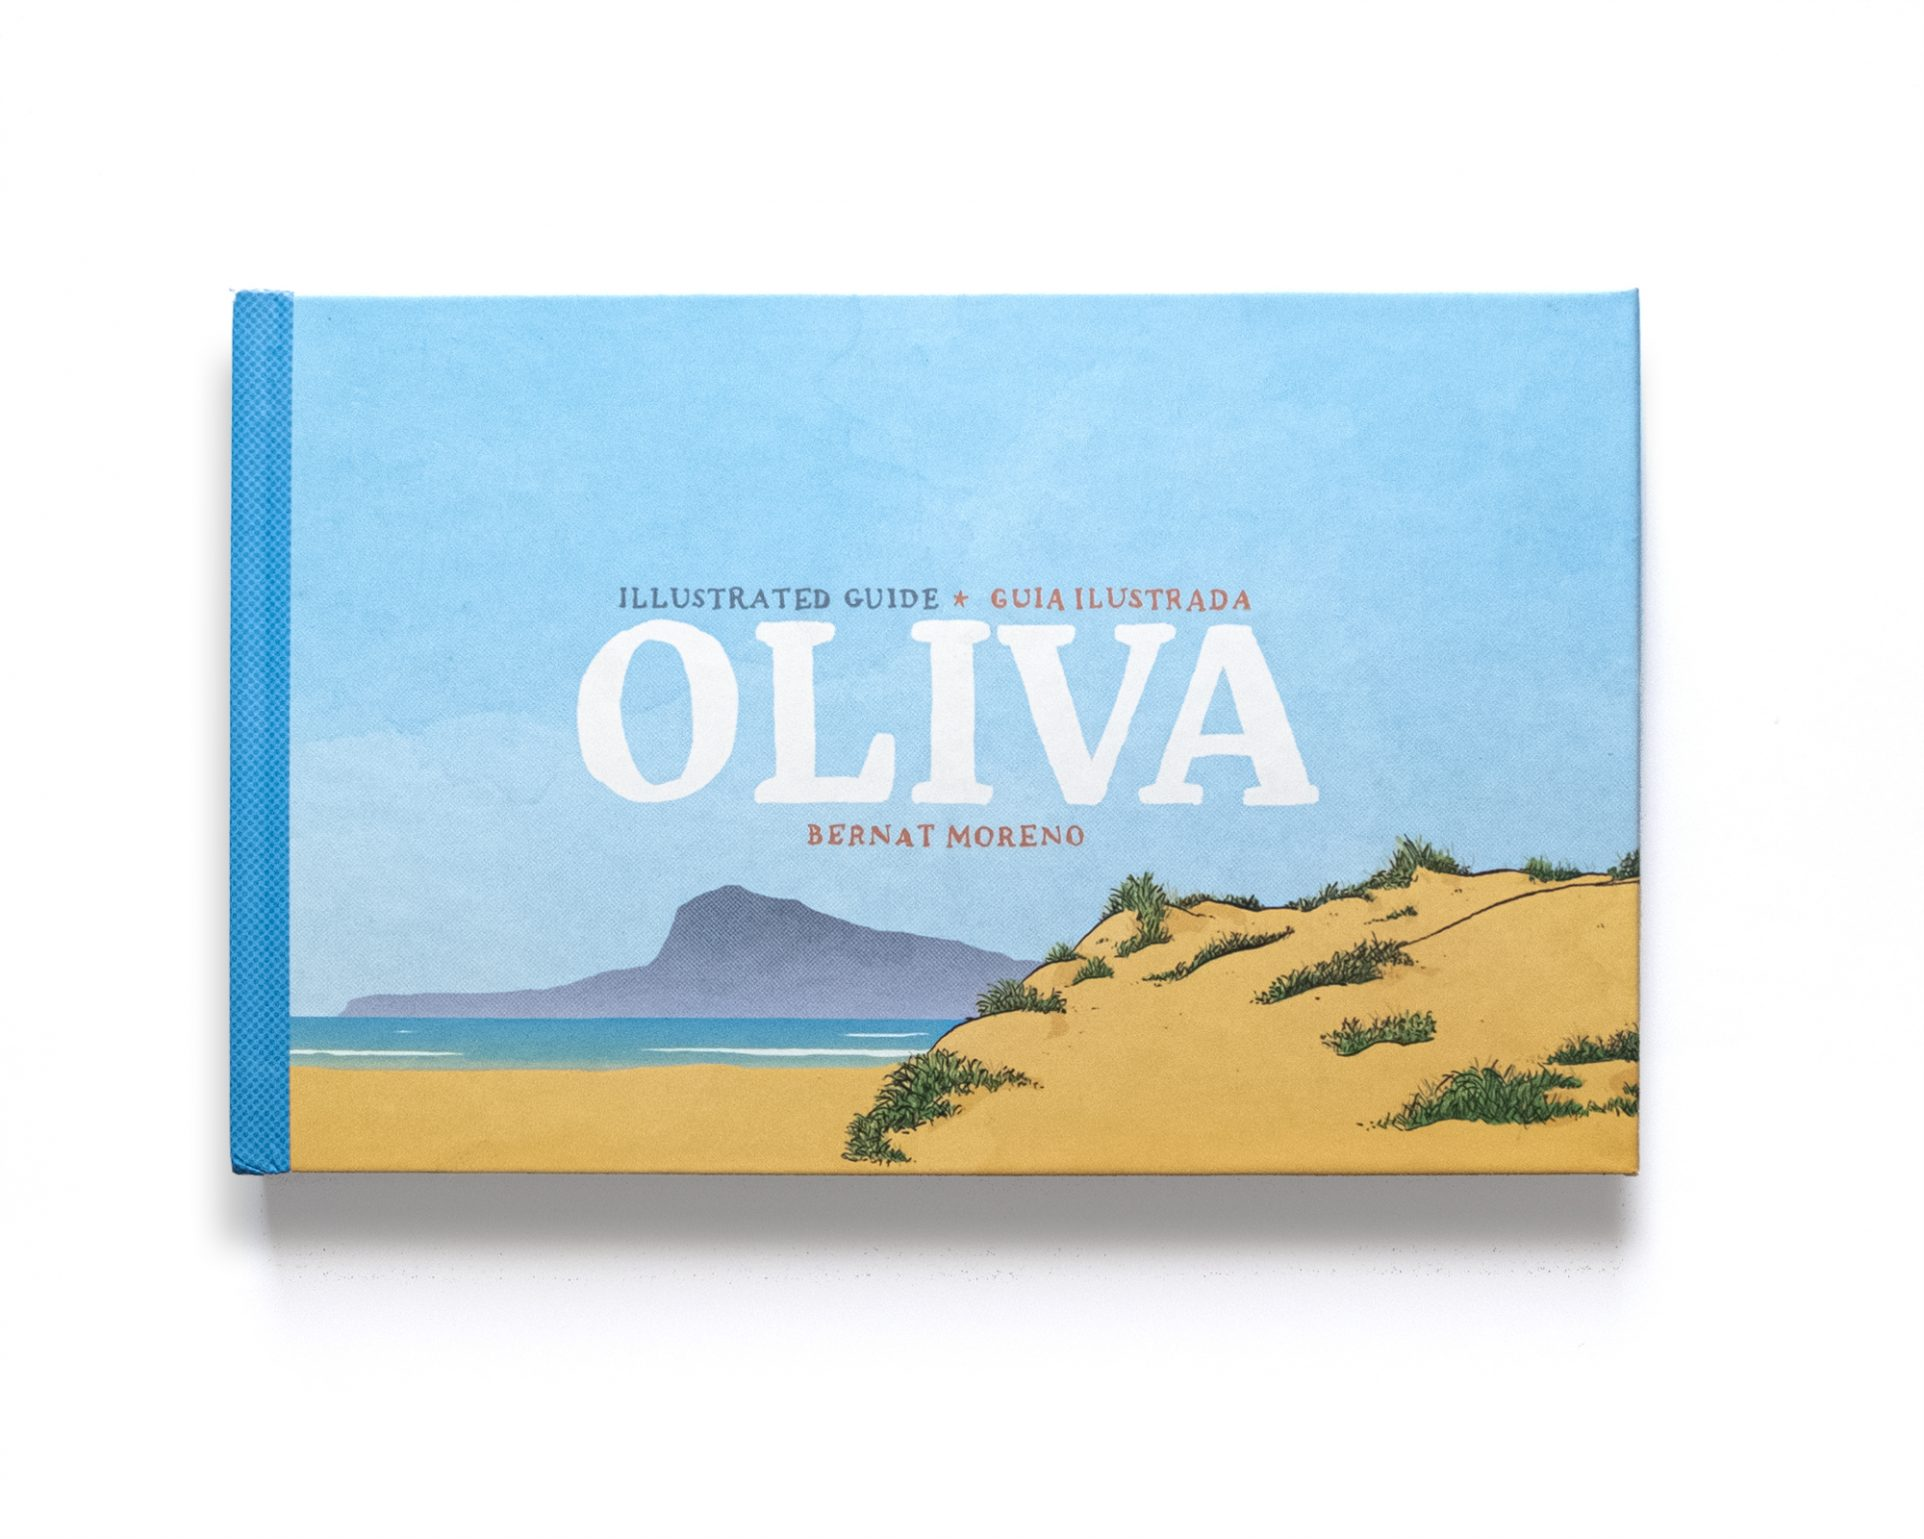 Urban sketchers artbook traveloge about the city of Oliva, Valencia (Spain). Watercolor illustrations